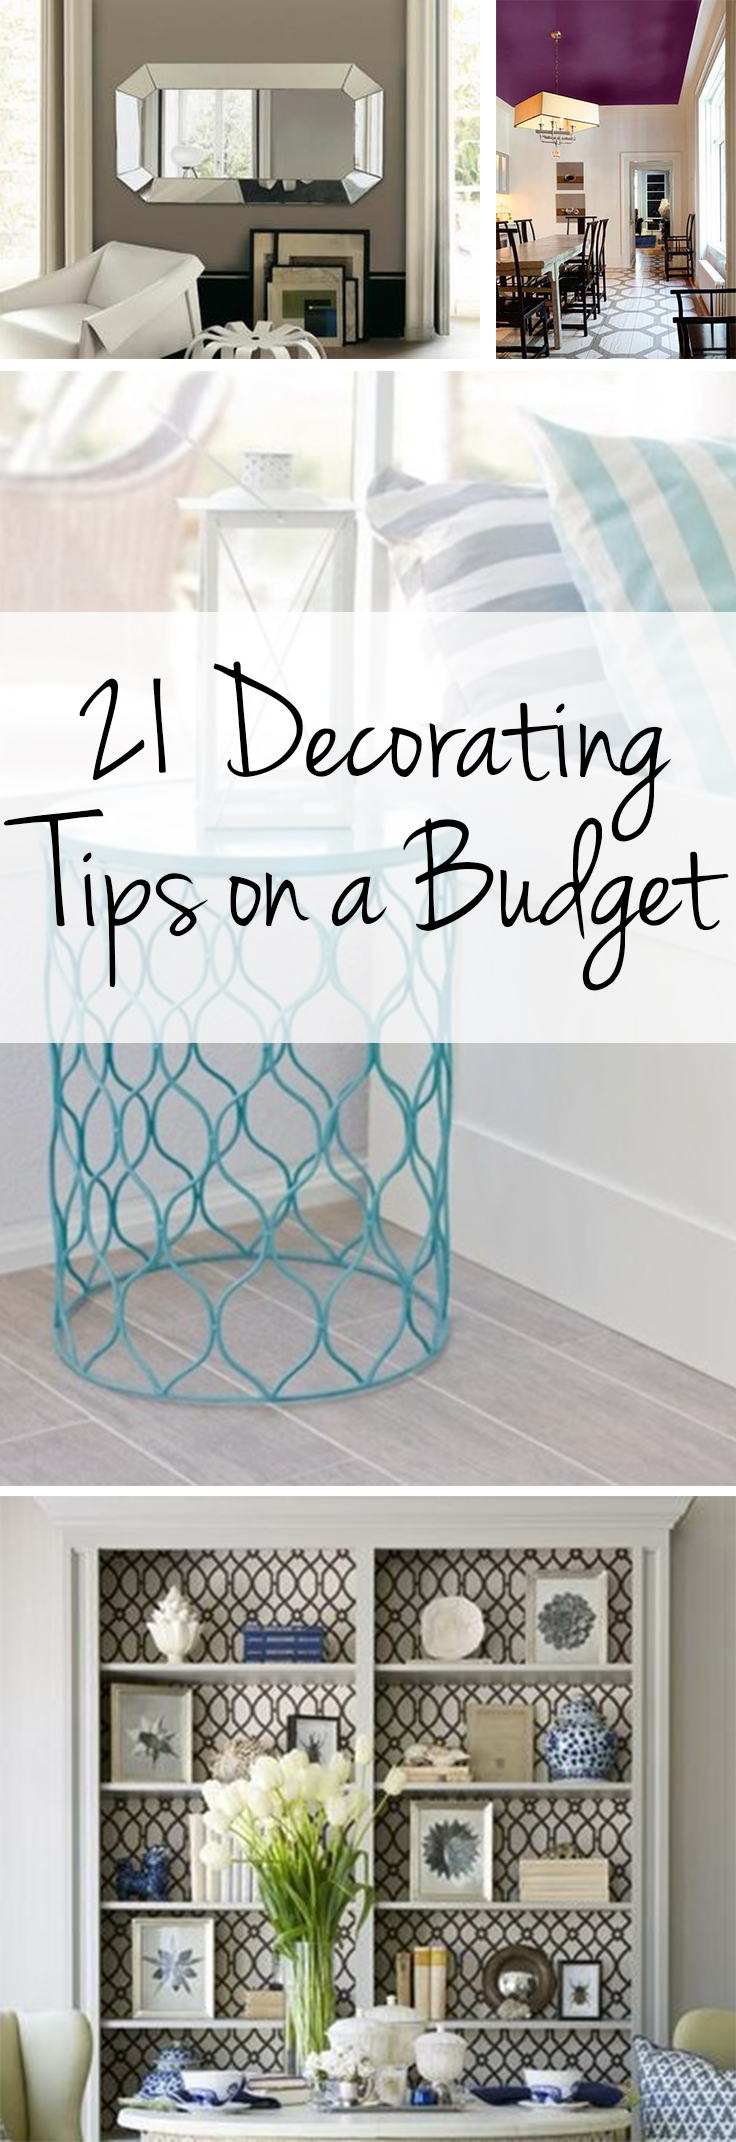 21 Decorating Tips on a Budget - Wrapped in Rust